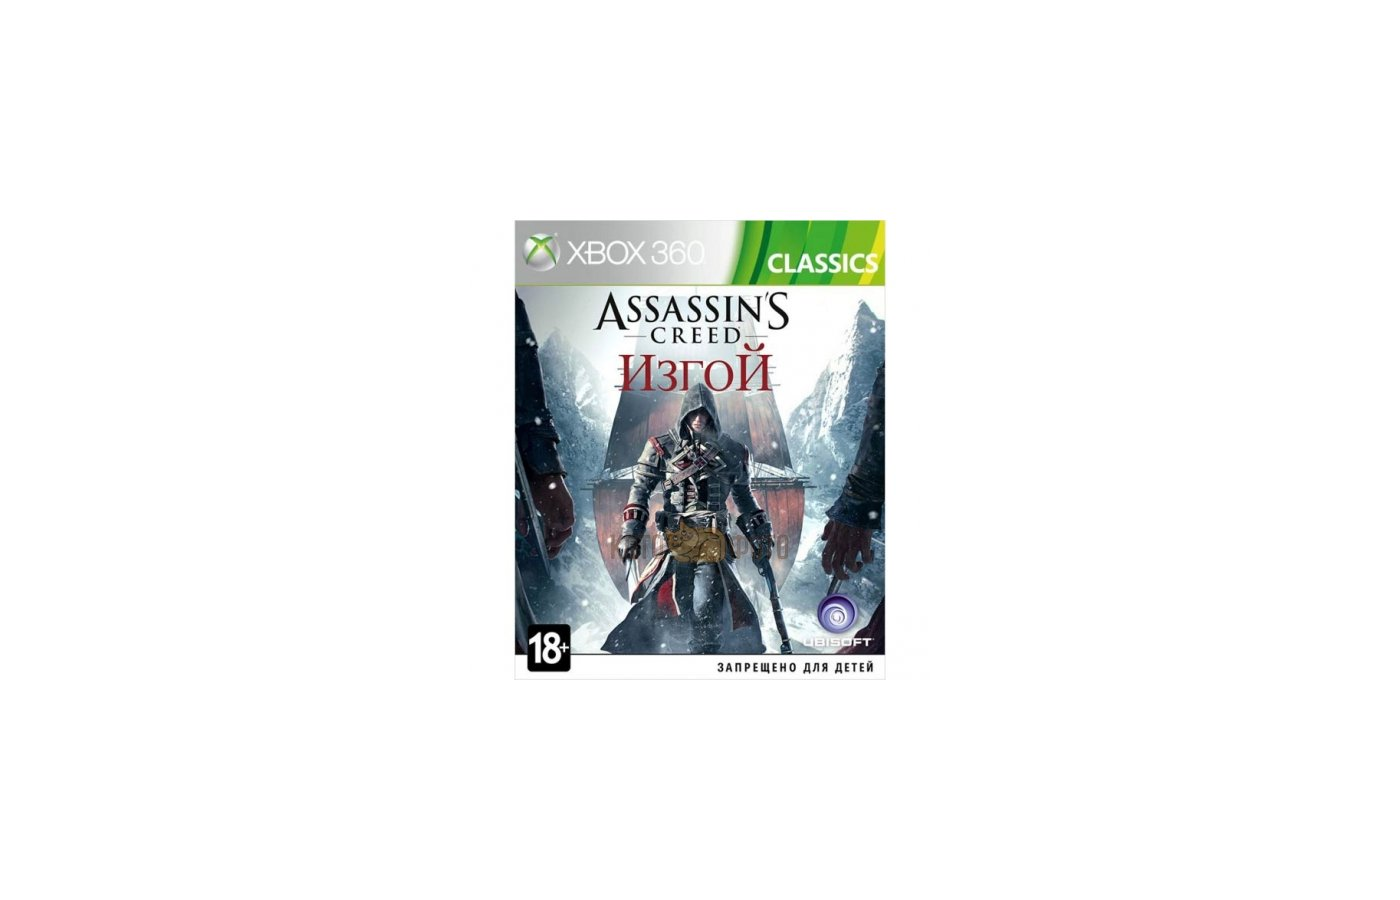 Assassins Creed: Изгой (Classics) Xbox 360 русская версия